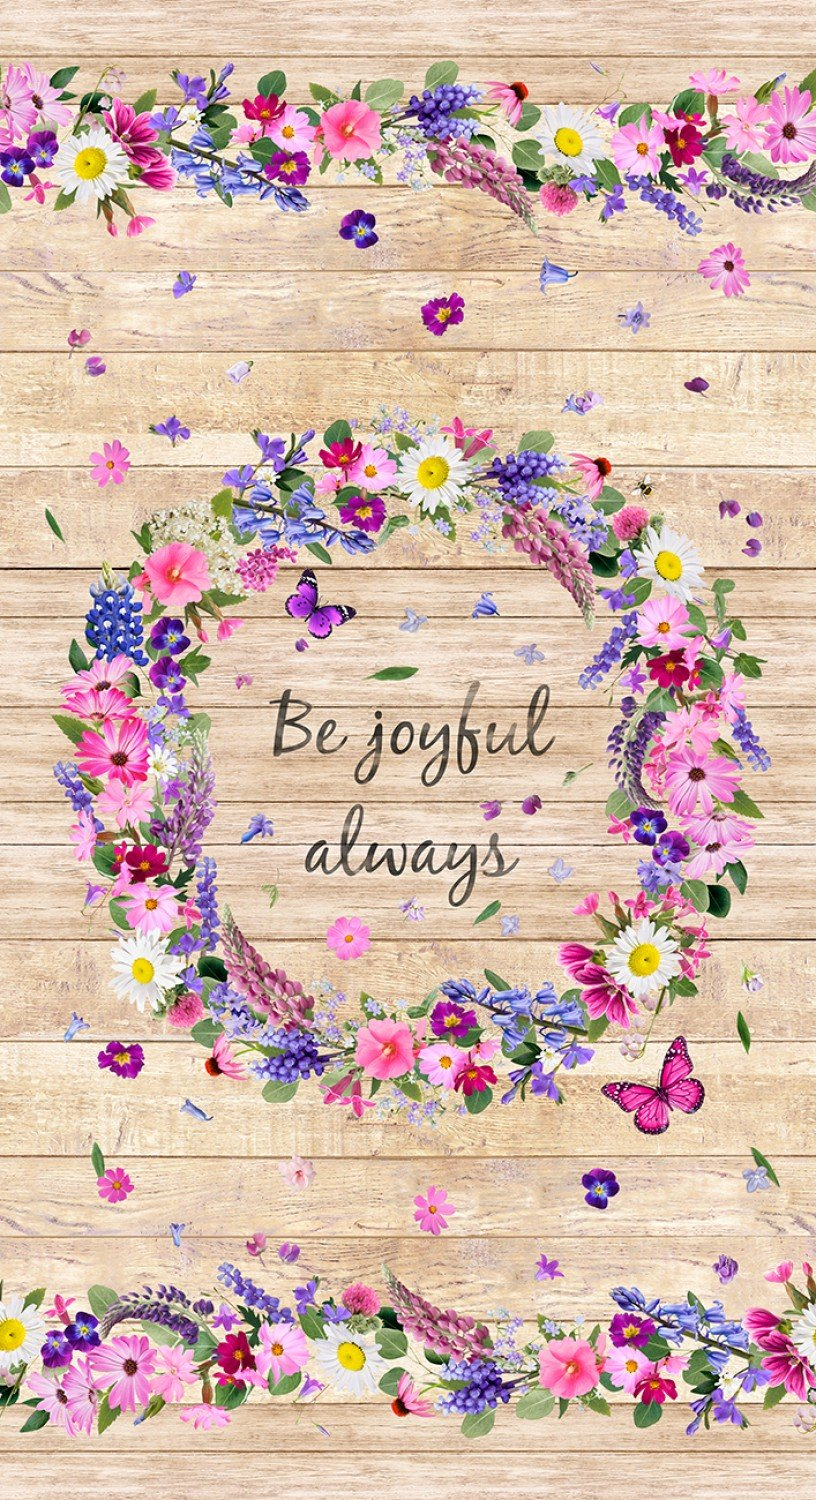 Be Joyful Always Wreath C7564 Panel